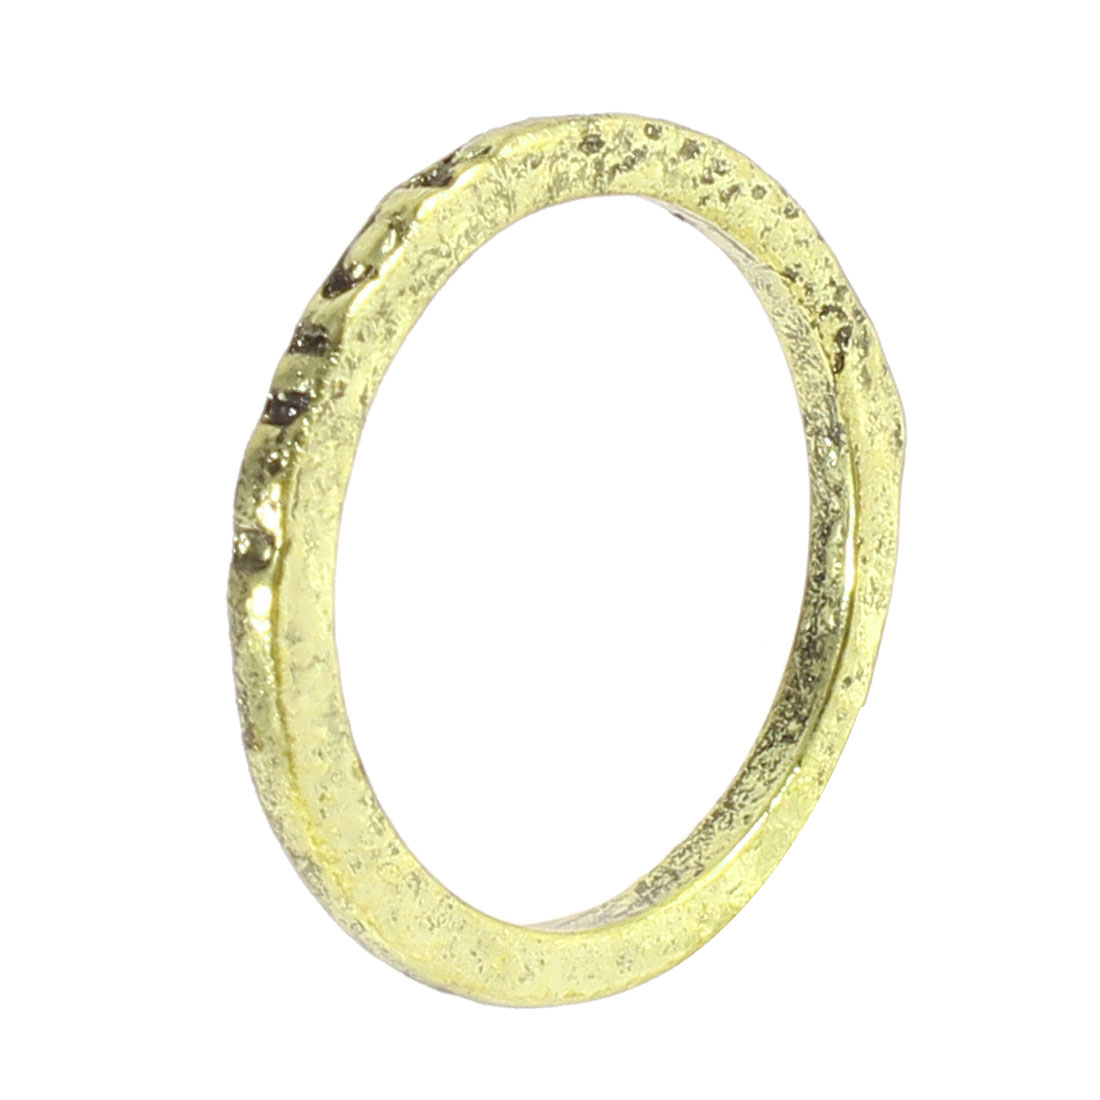 Ladies Bronze Tone Metal Luck Letter Carved Finger Ring Decoration Gift